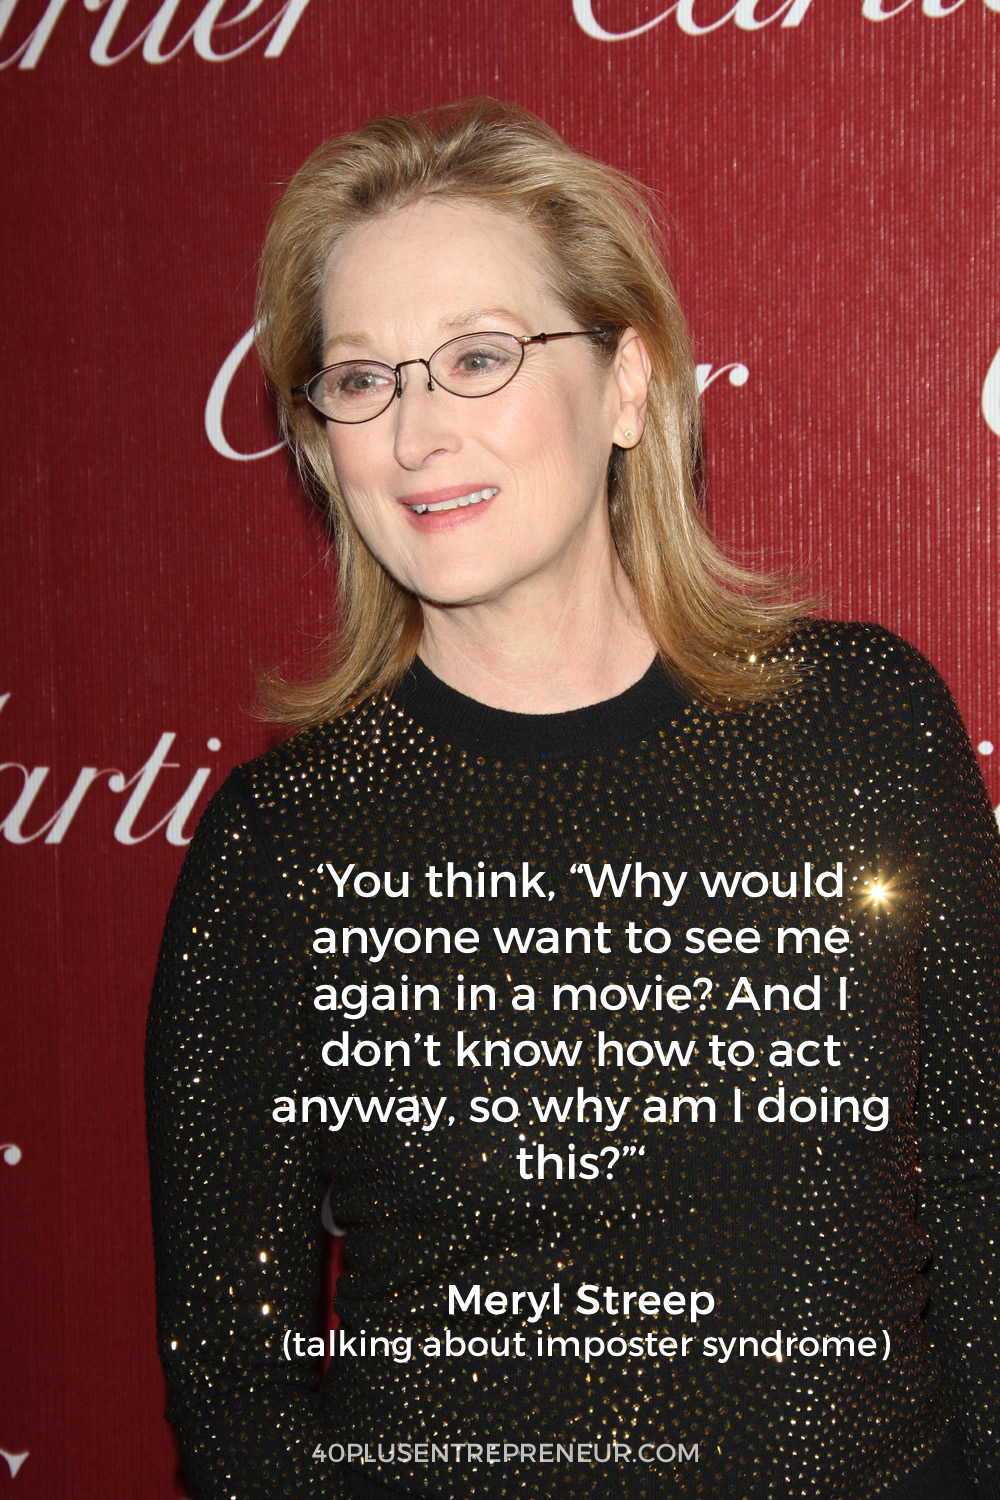 Meryl Streep talks about imposter syndrome. Find out how to overcome imposter syndrome at 40plusEntrepreneur.com